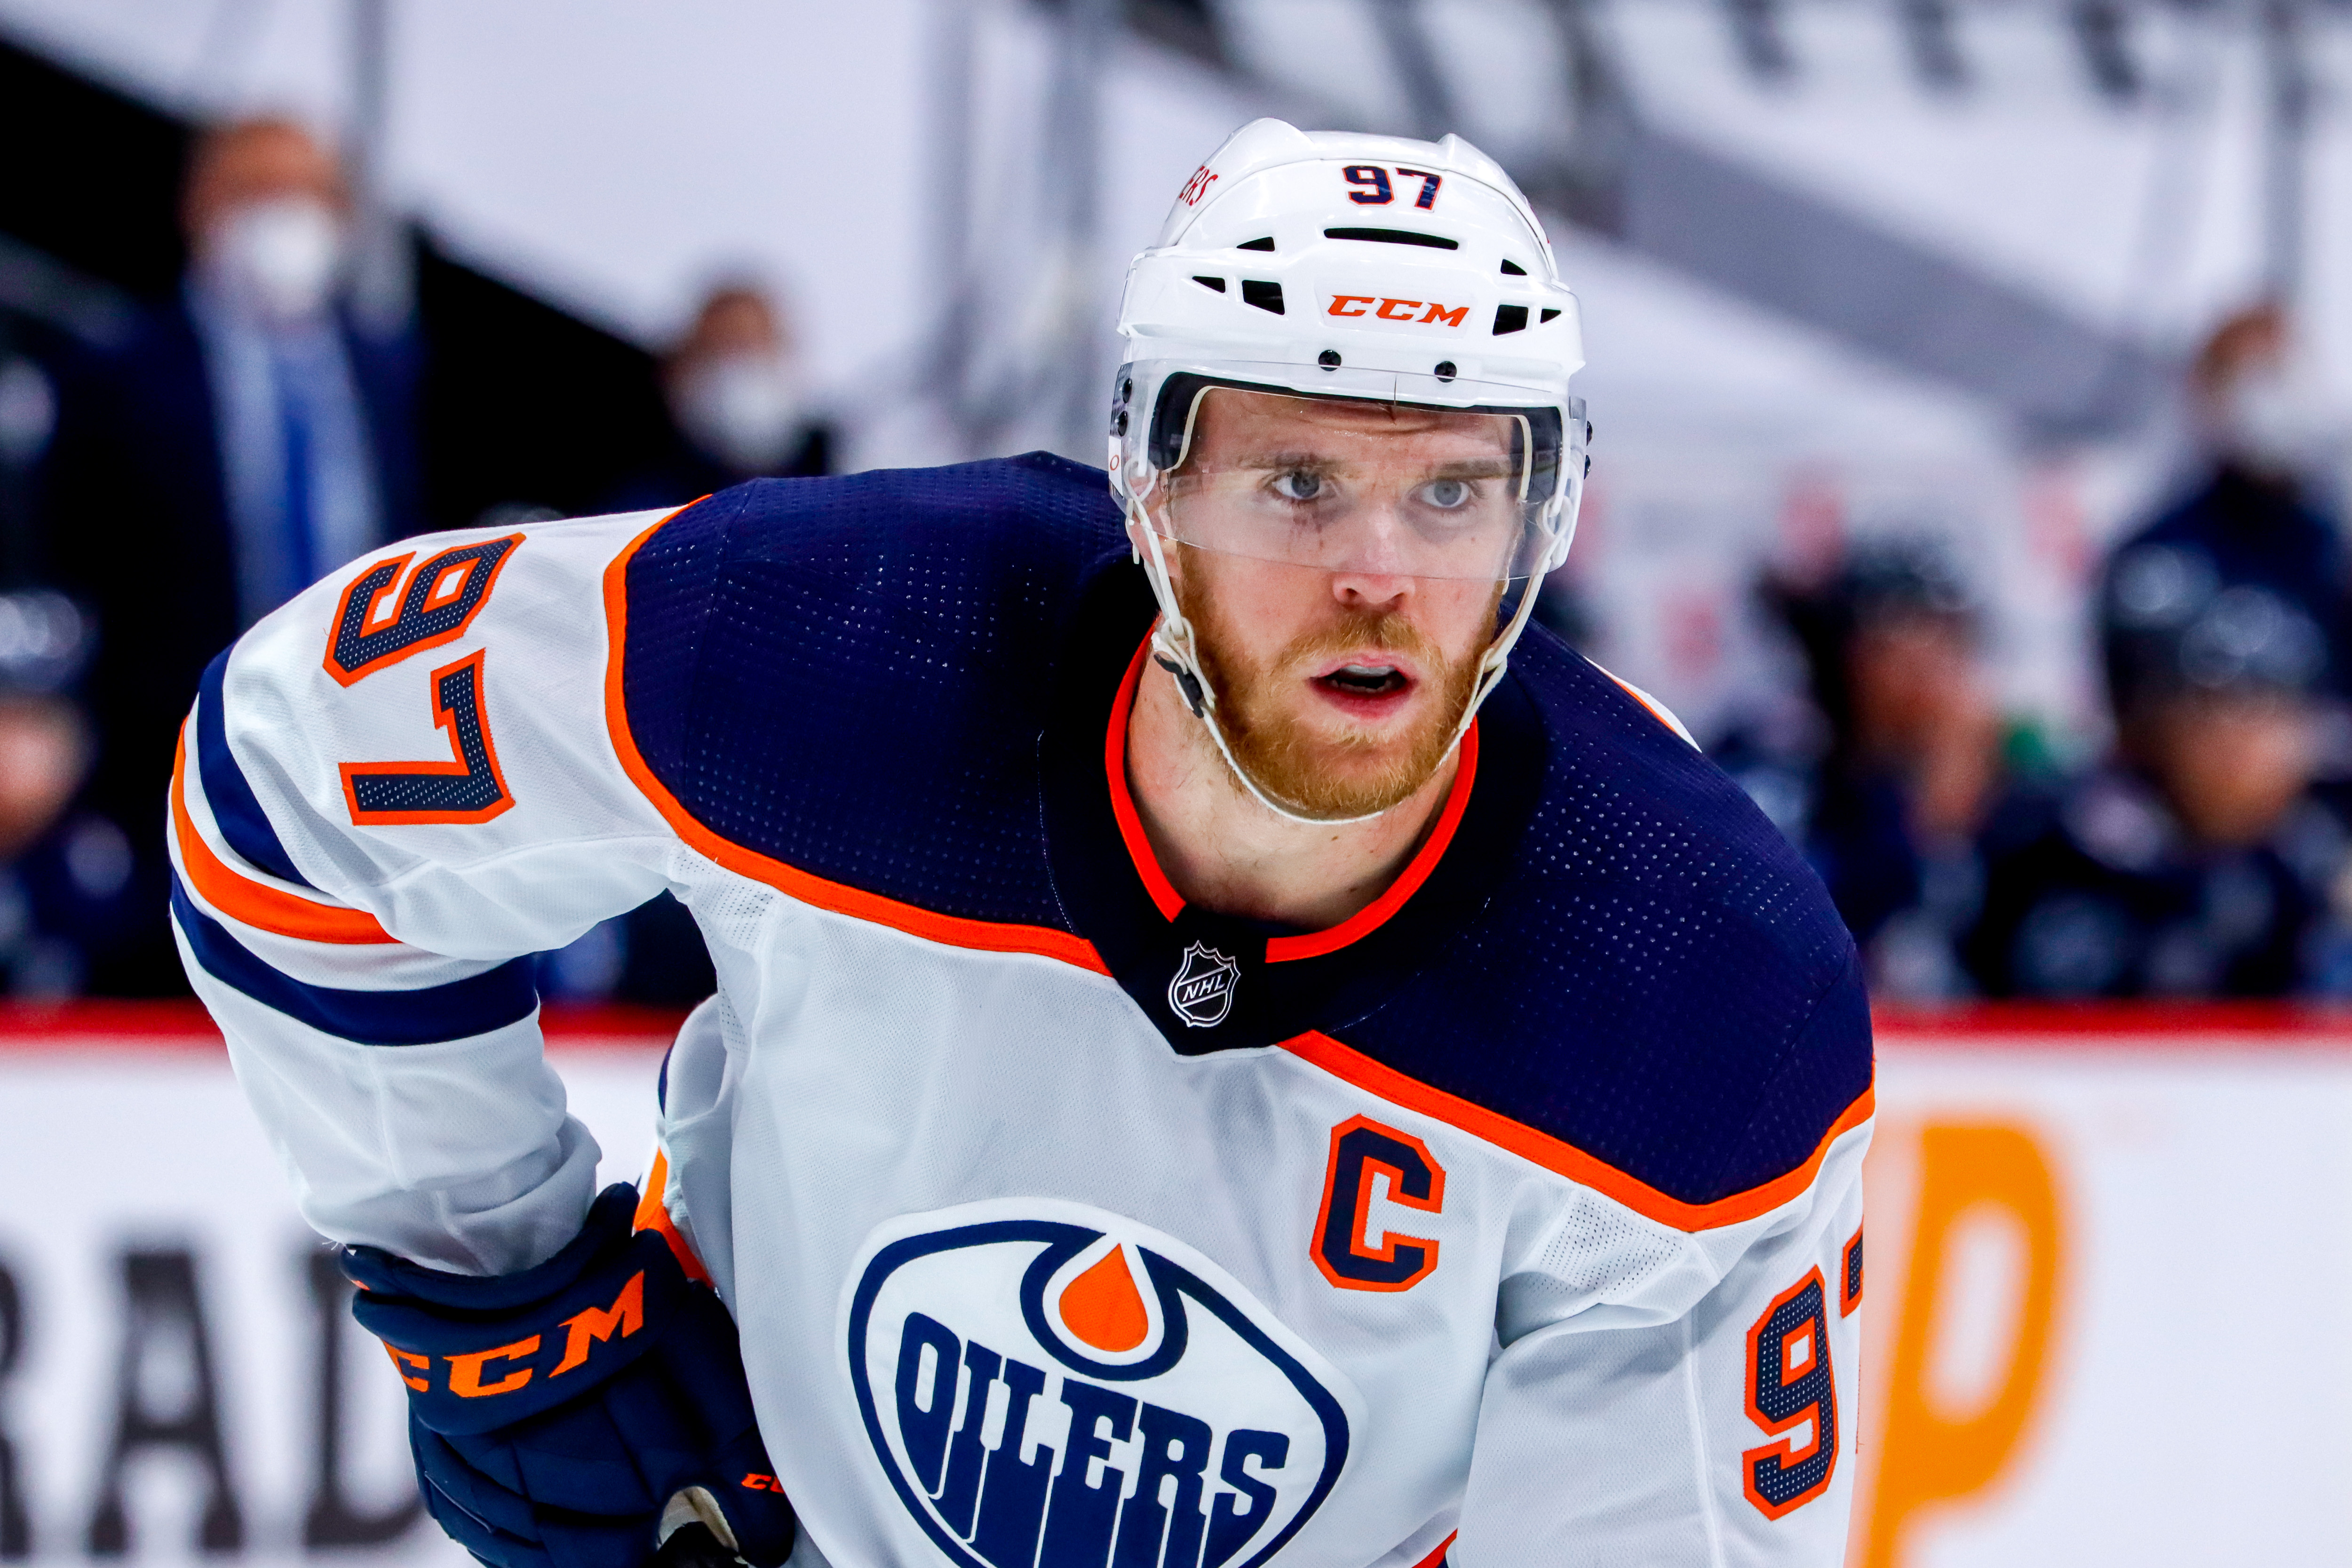 Connor McDavid #97 of the Edmonton Oilers prepares for a second period face-off against the Winnipeg Jets in Game Four of the First Round of the 2021 Stanley Cup Playoffs at Bell MTS Place on May 24, 2021 in Winnipeg, Manitoba.